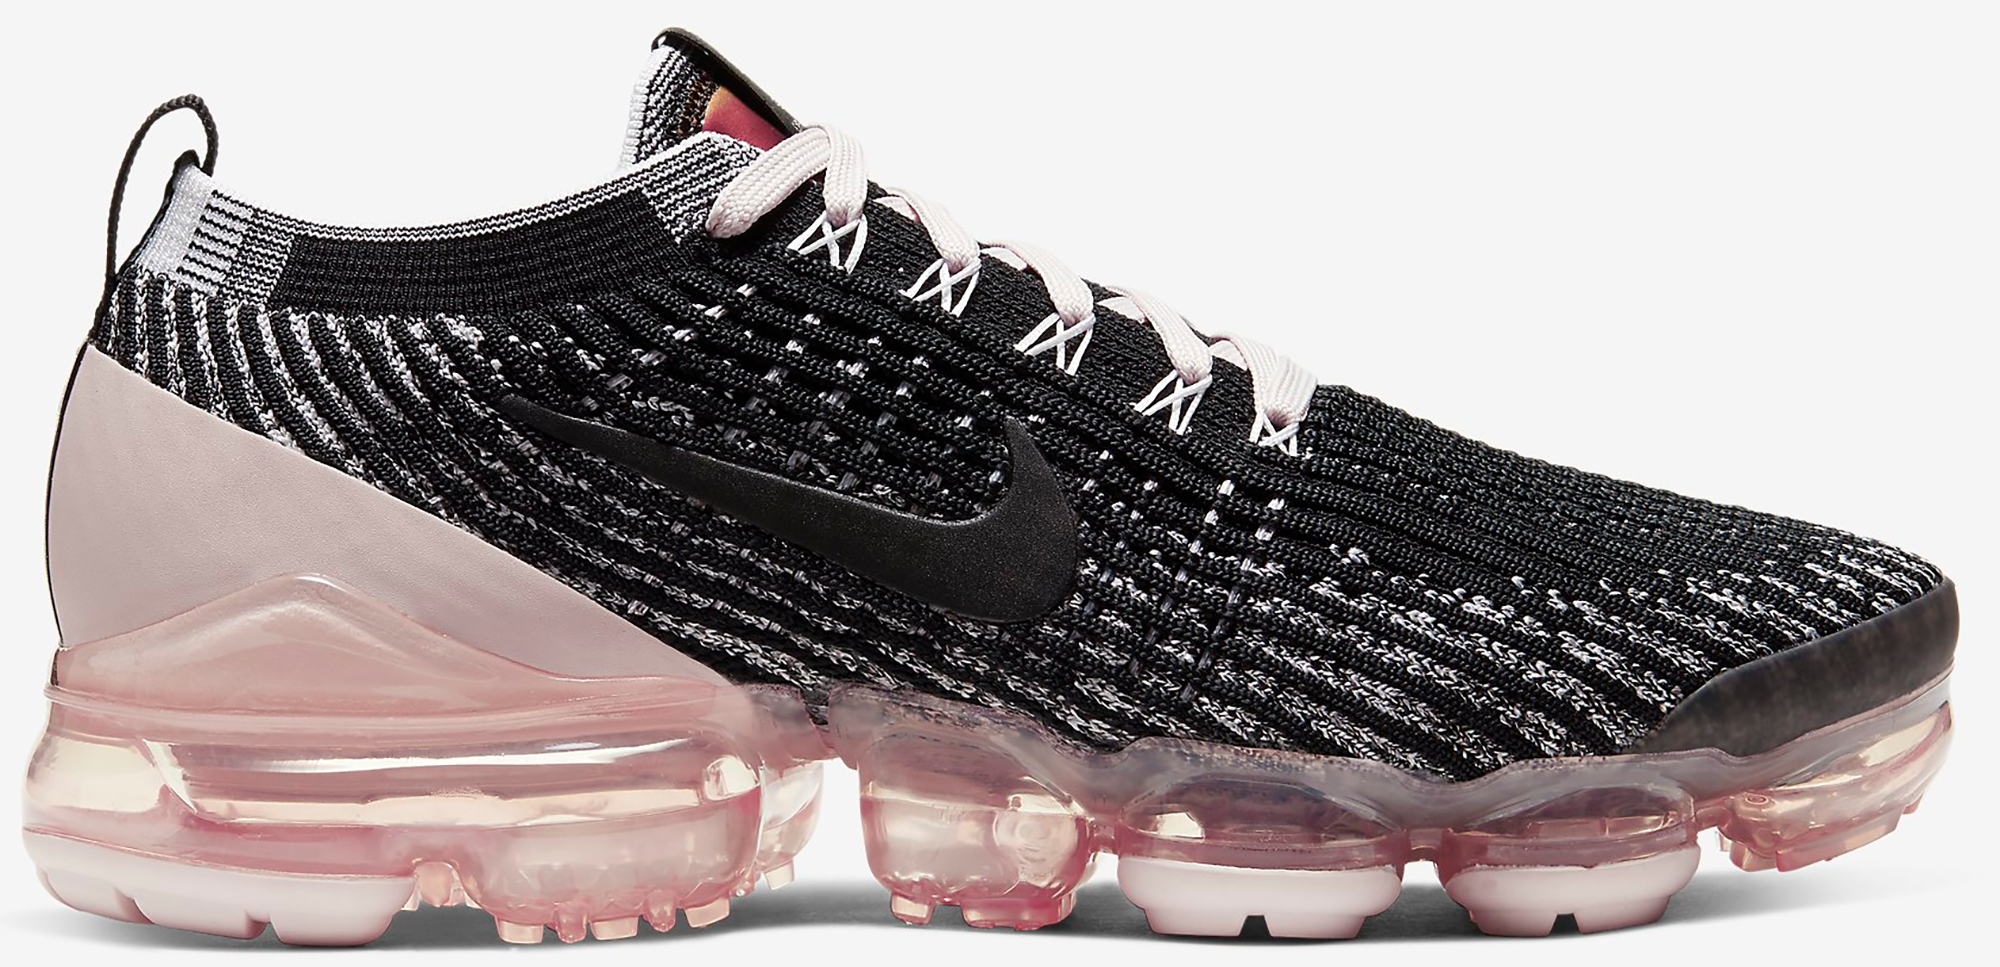 nike air vapormax flyknit rose 53% di sconto sglabs.it  3IQvW5